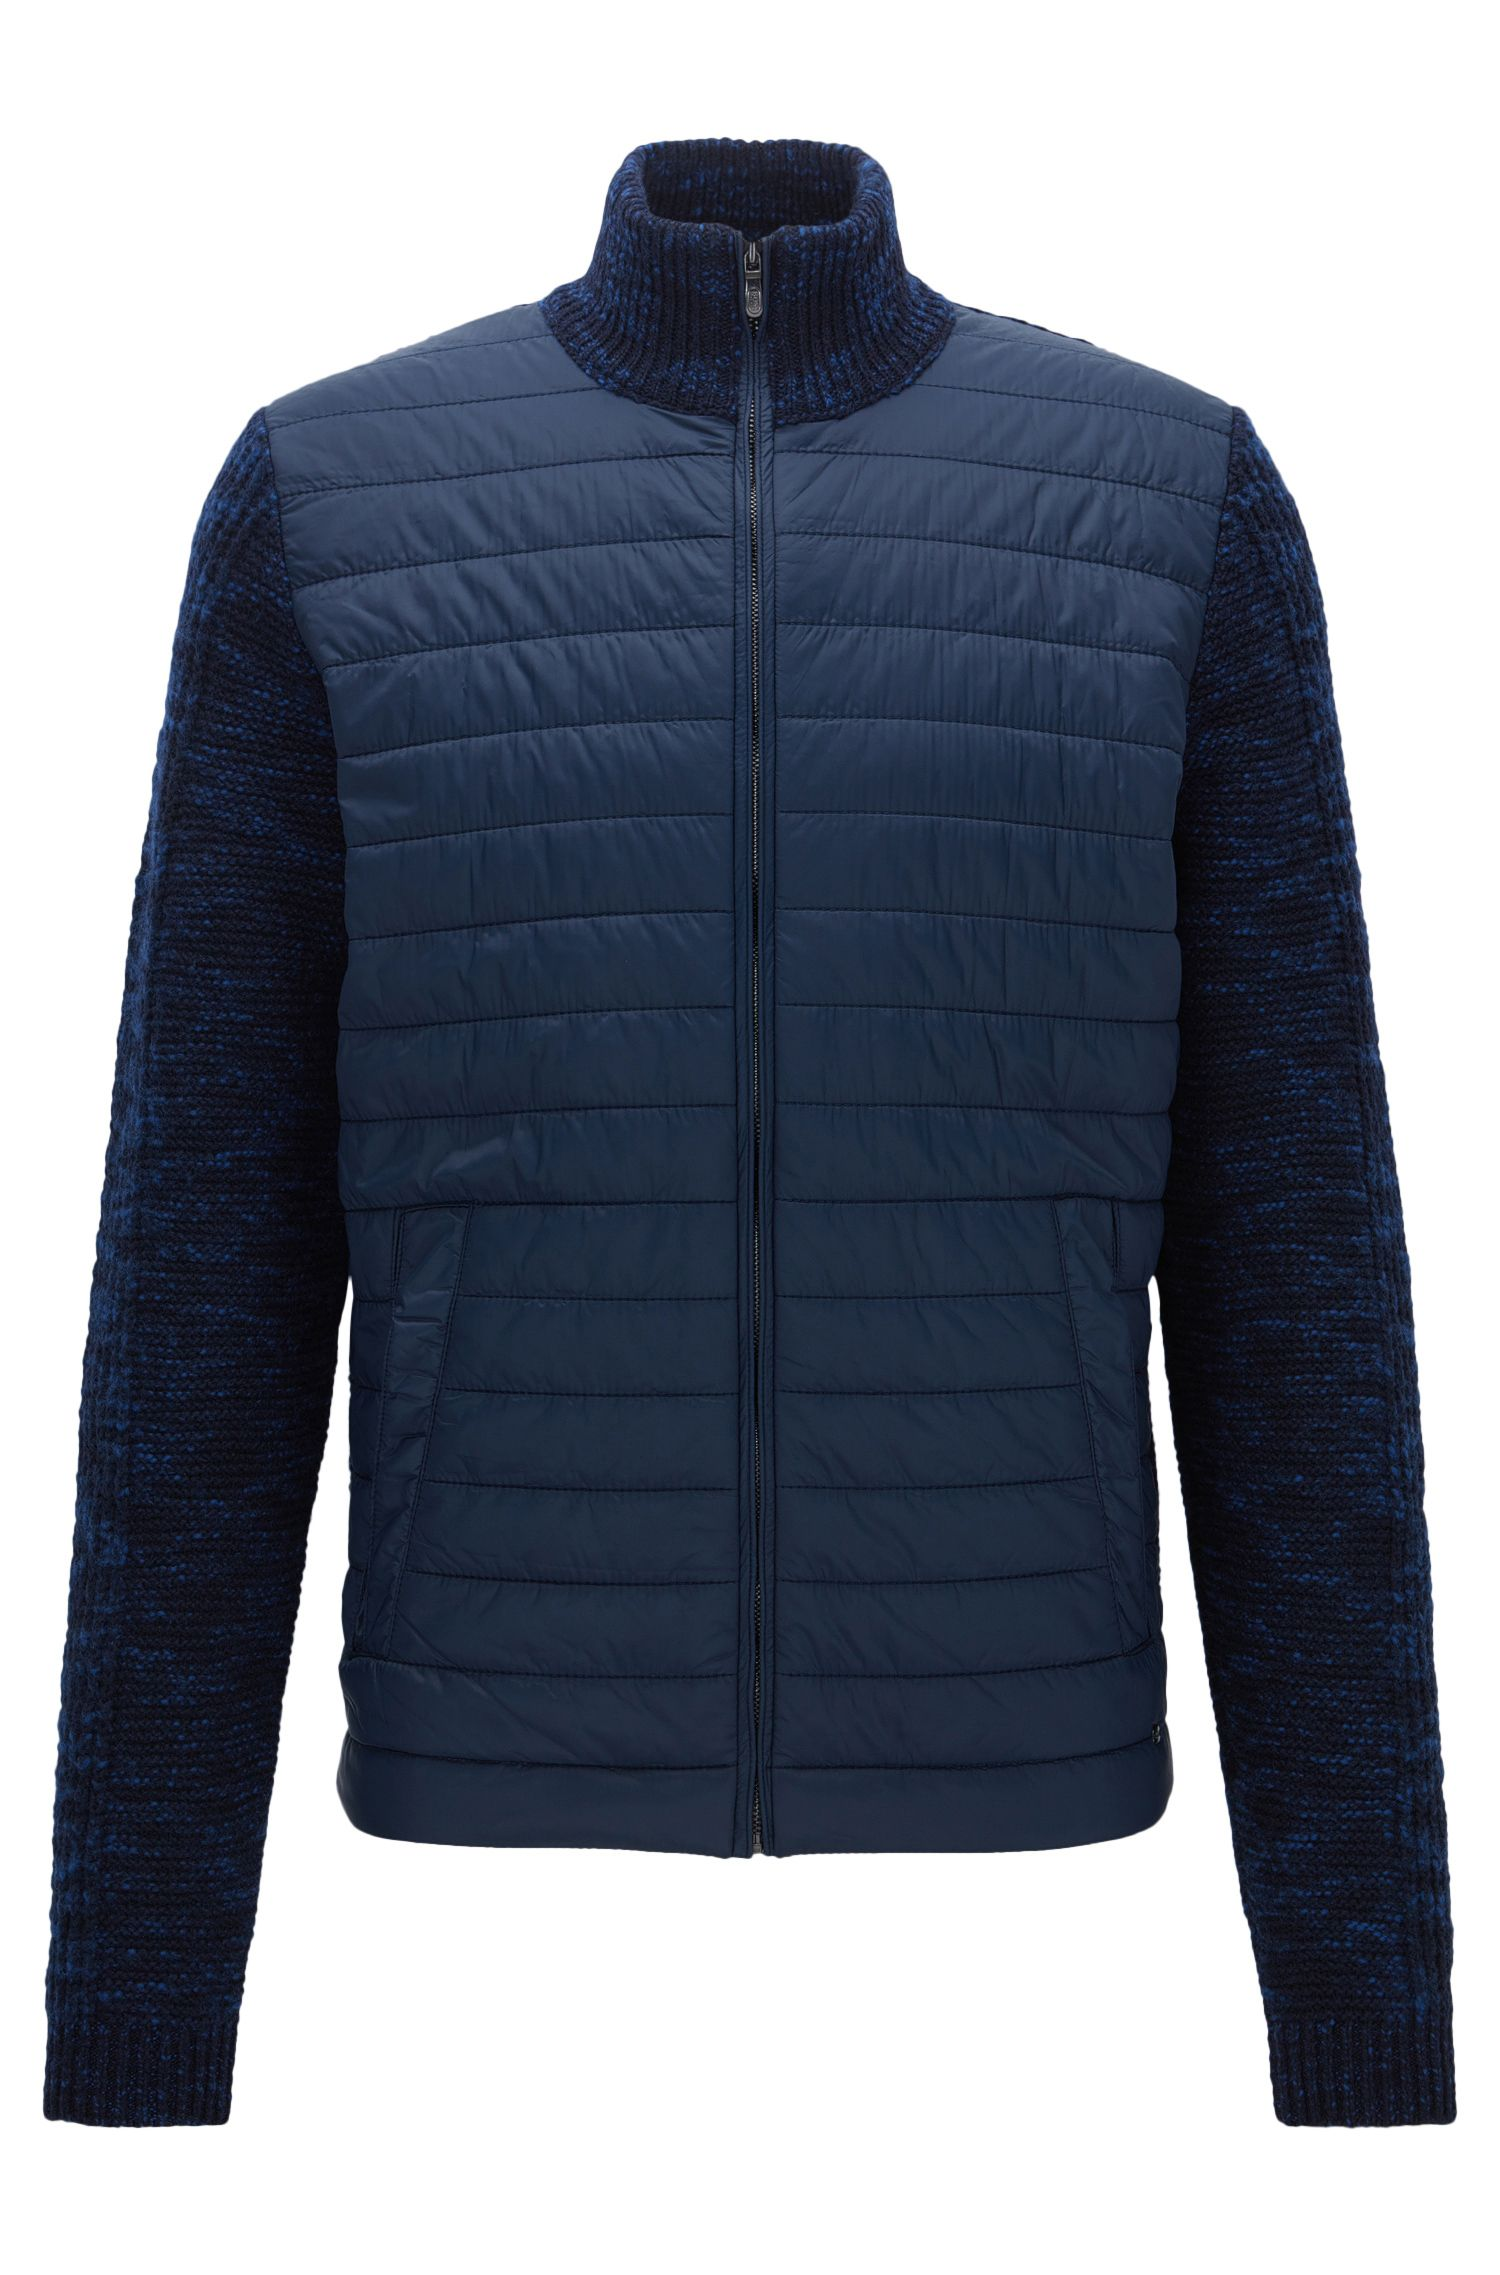 Nylon & Wool Blend Jacket | Zuriel, Dark Blue